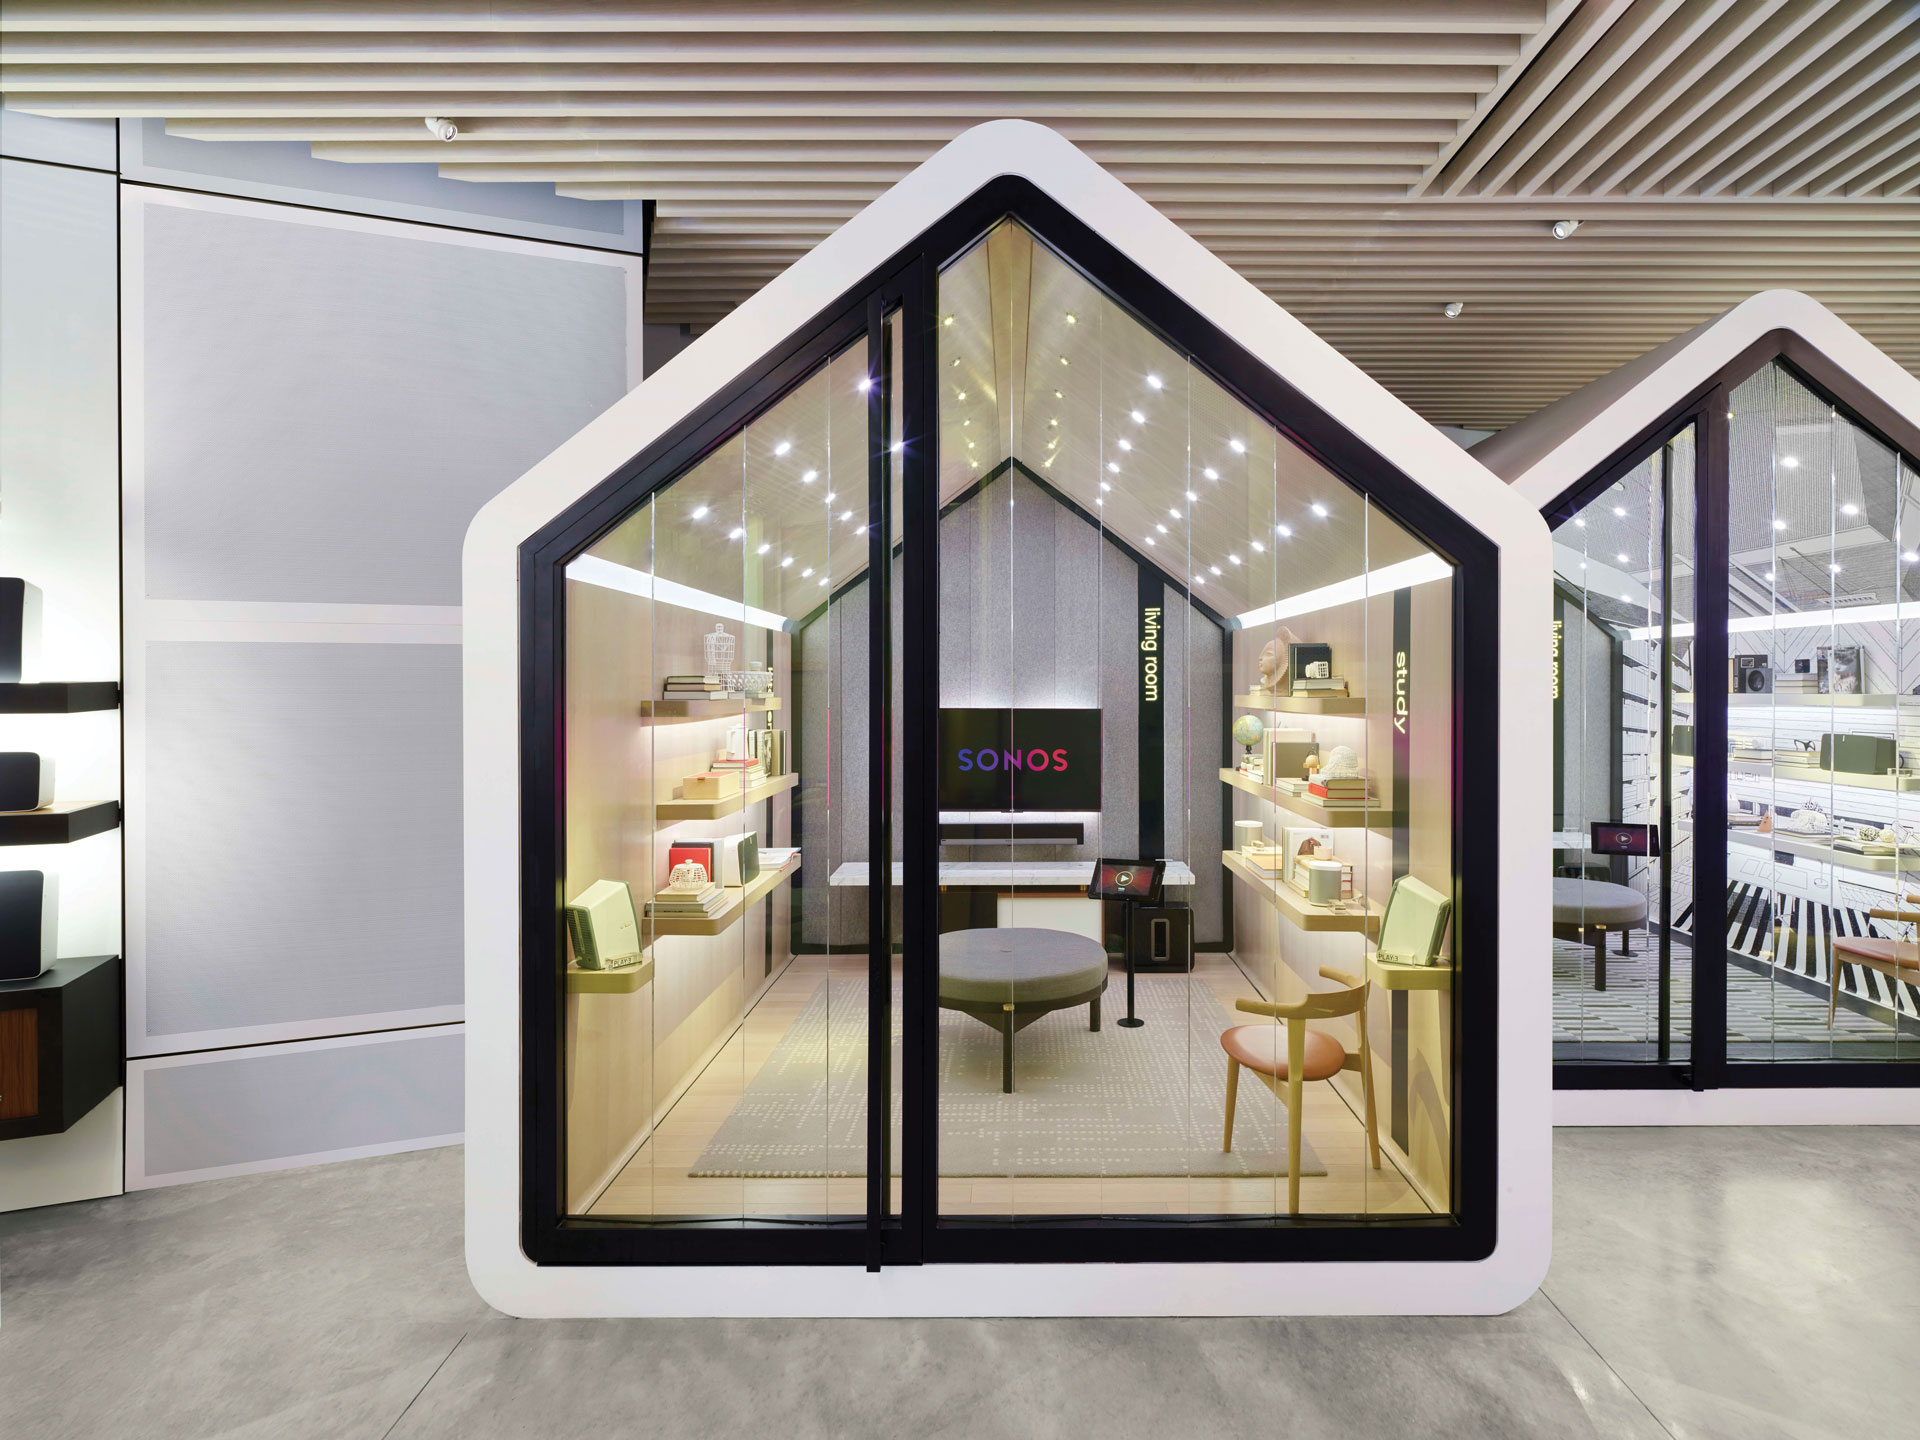 A listening room at the Sonos store